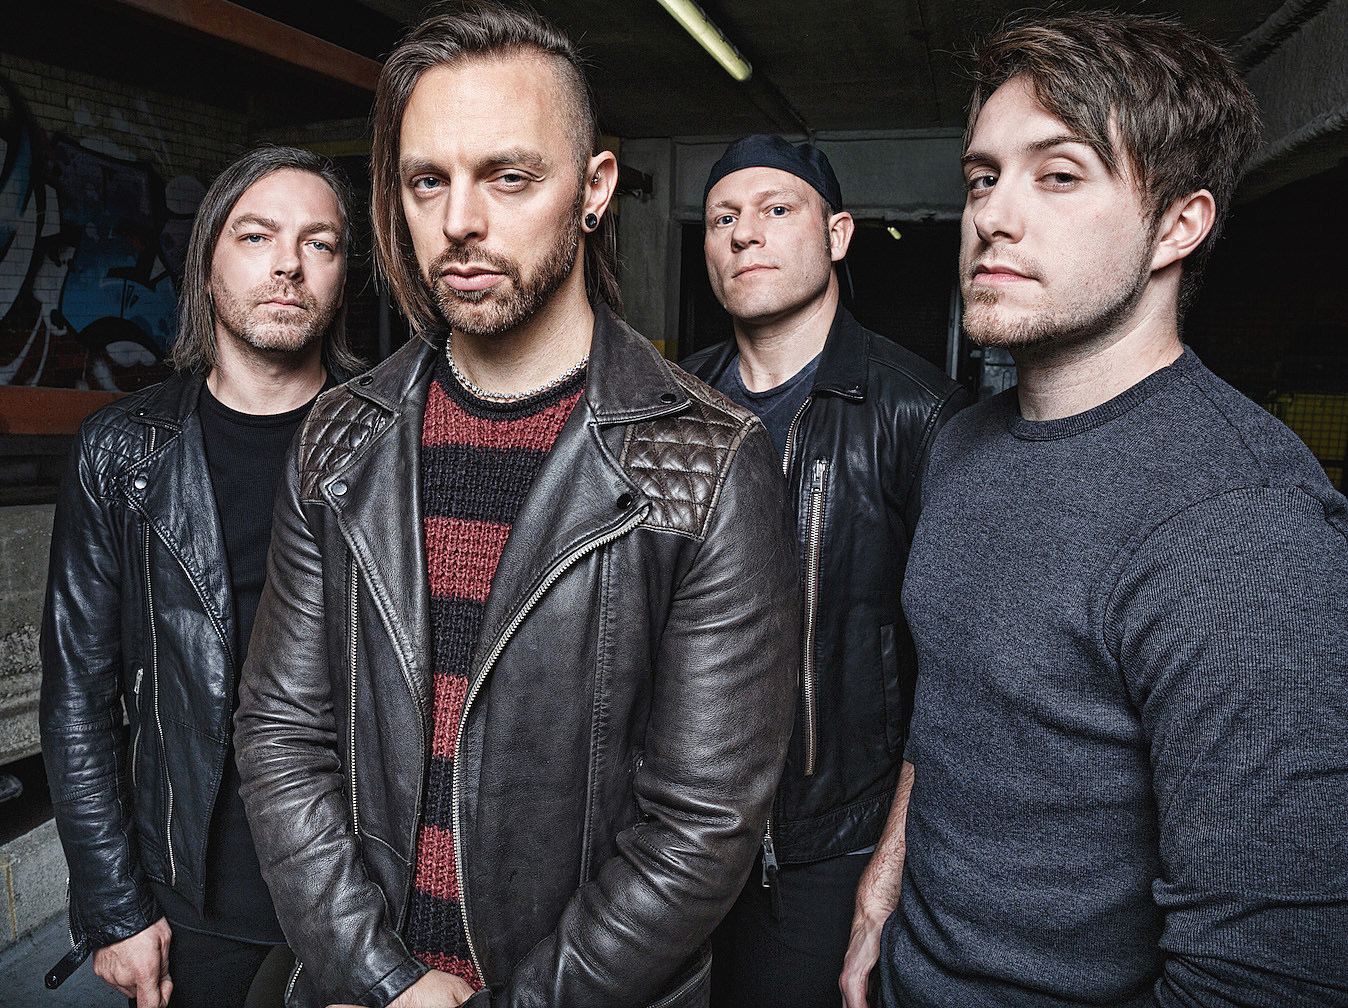 Best of 2018: Bullet for My Valentine Pick Favorite Music, Games, Shows and More